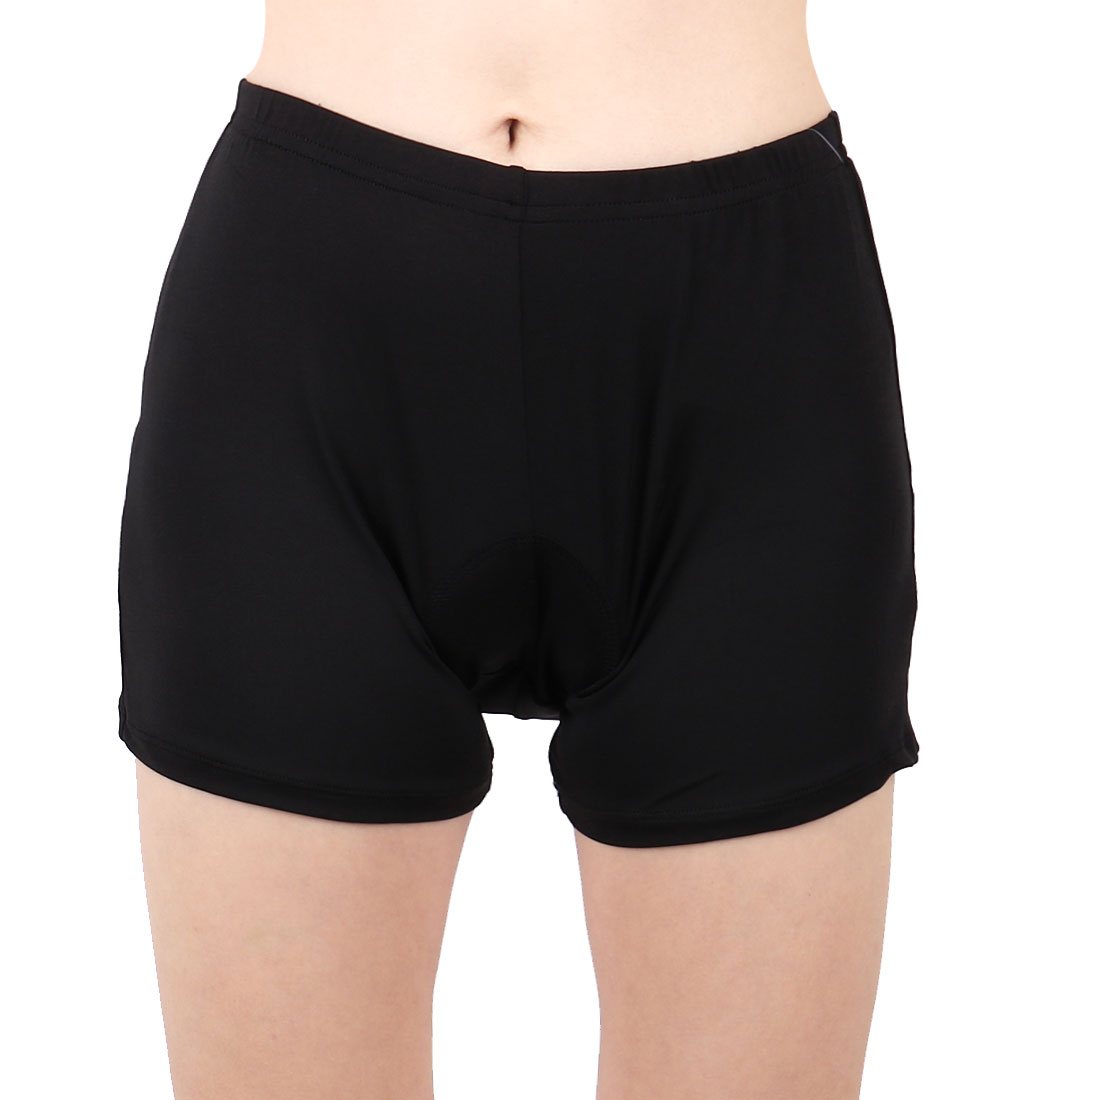 Women Polyester Outdoor Riding Bicycle Biking Underpants Cycling Shorts Black L/S (US 4)